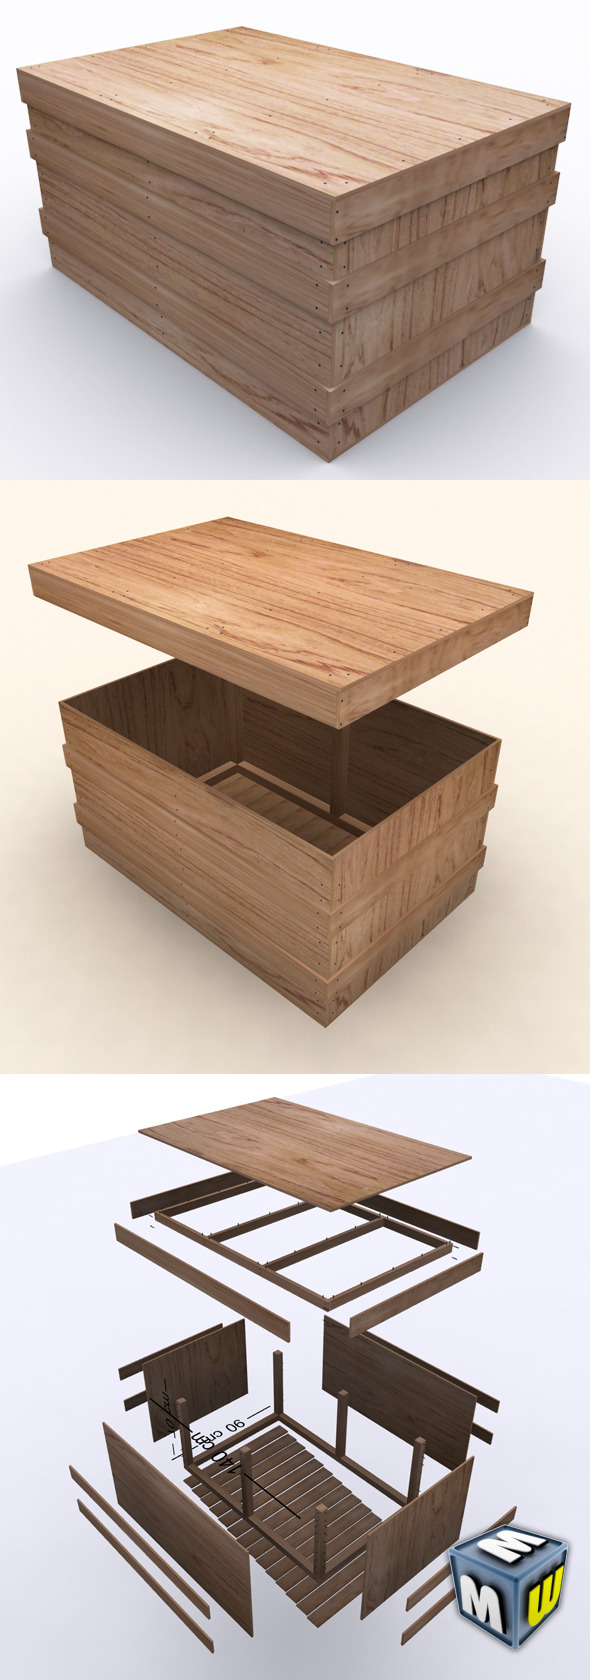 "Wooden Case ""BOX"" - 3DOcean Item for Sale"